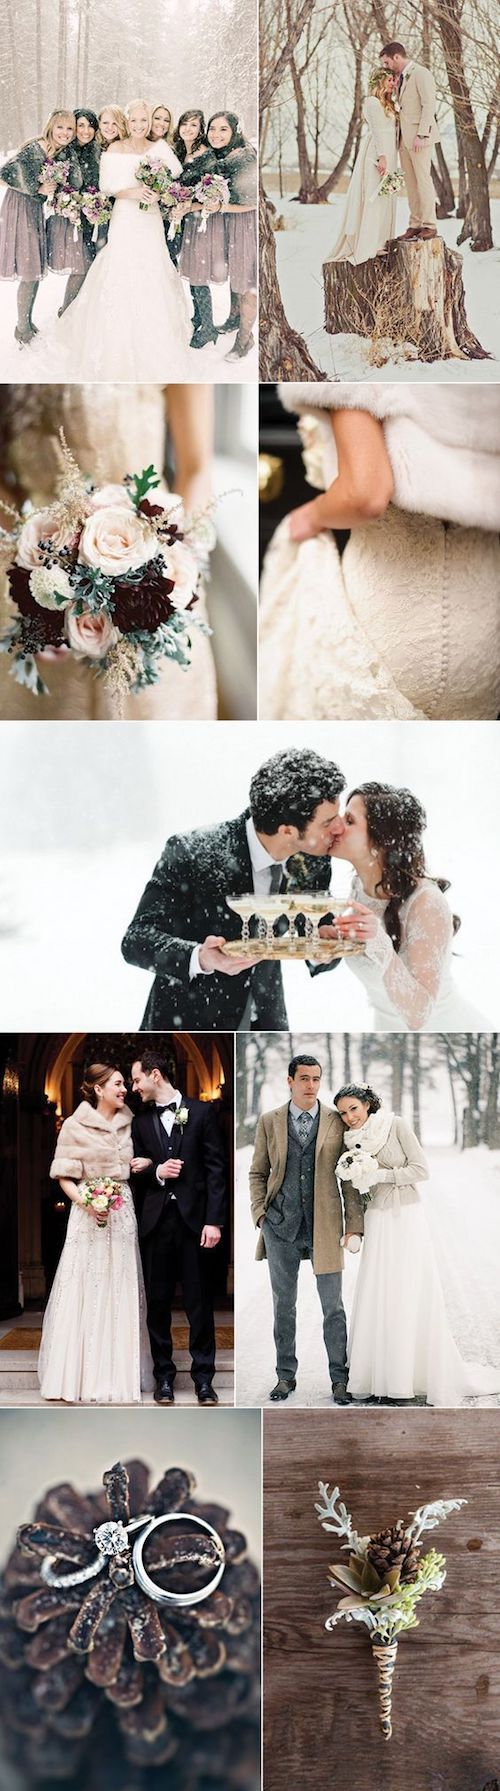 Lovely and cheerful winter wedding ideas.